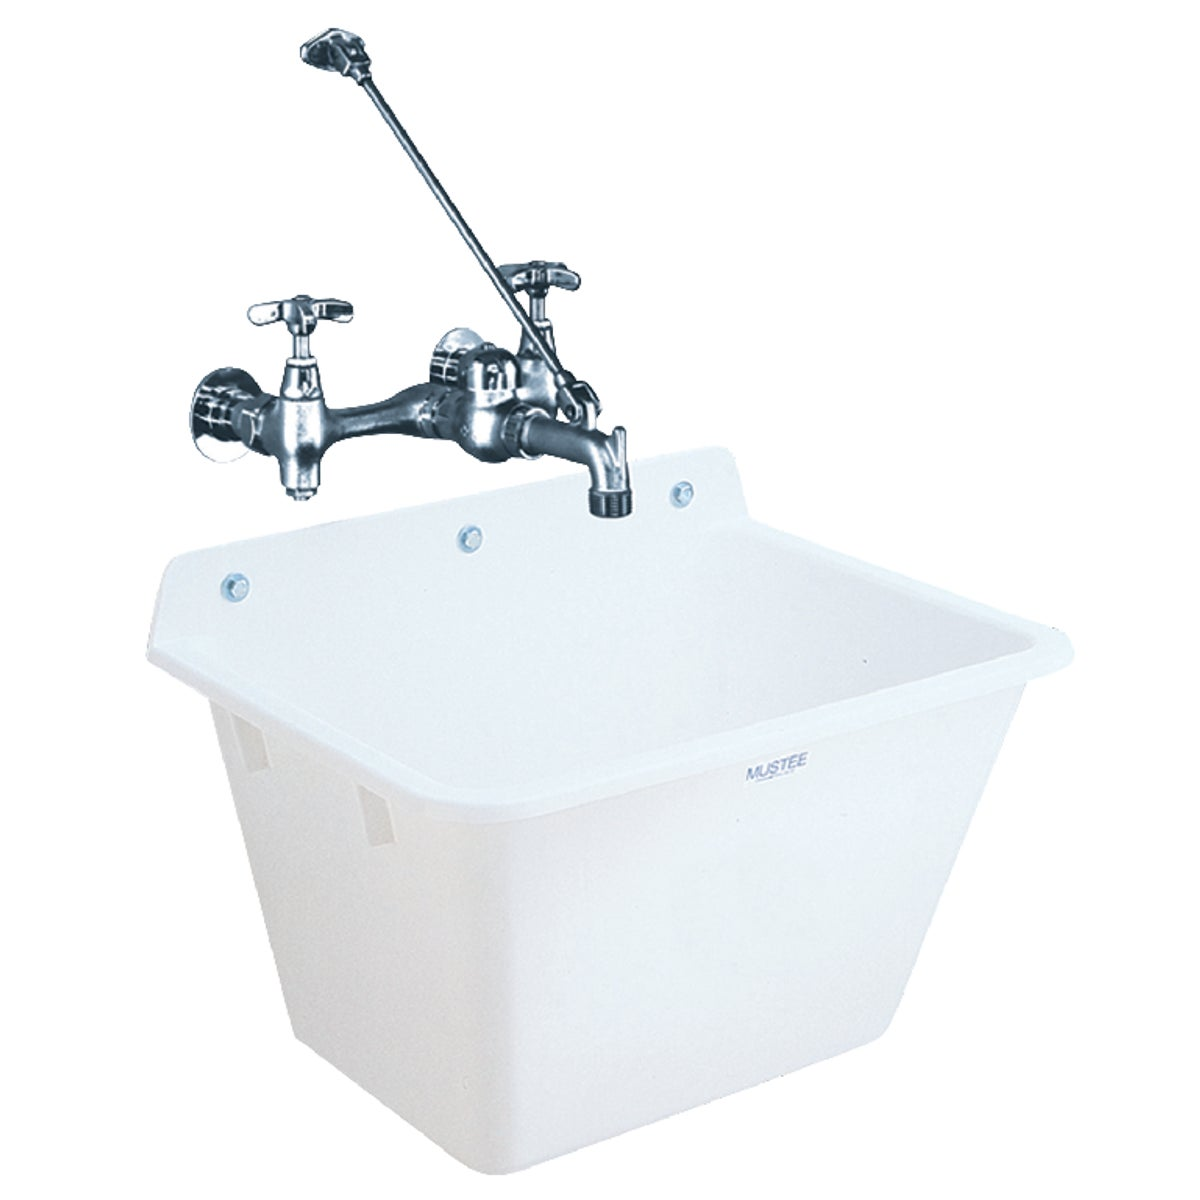 WALL MOUNT SINK